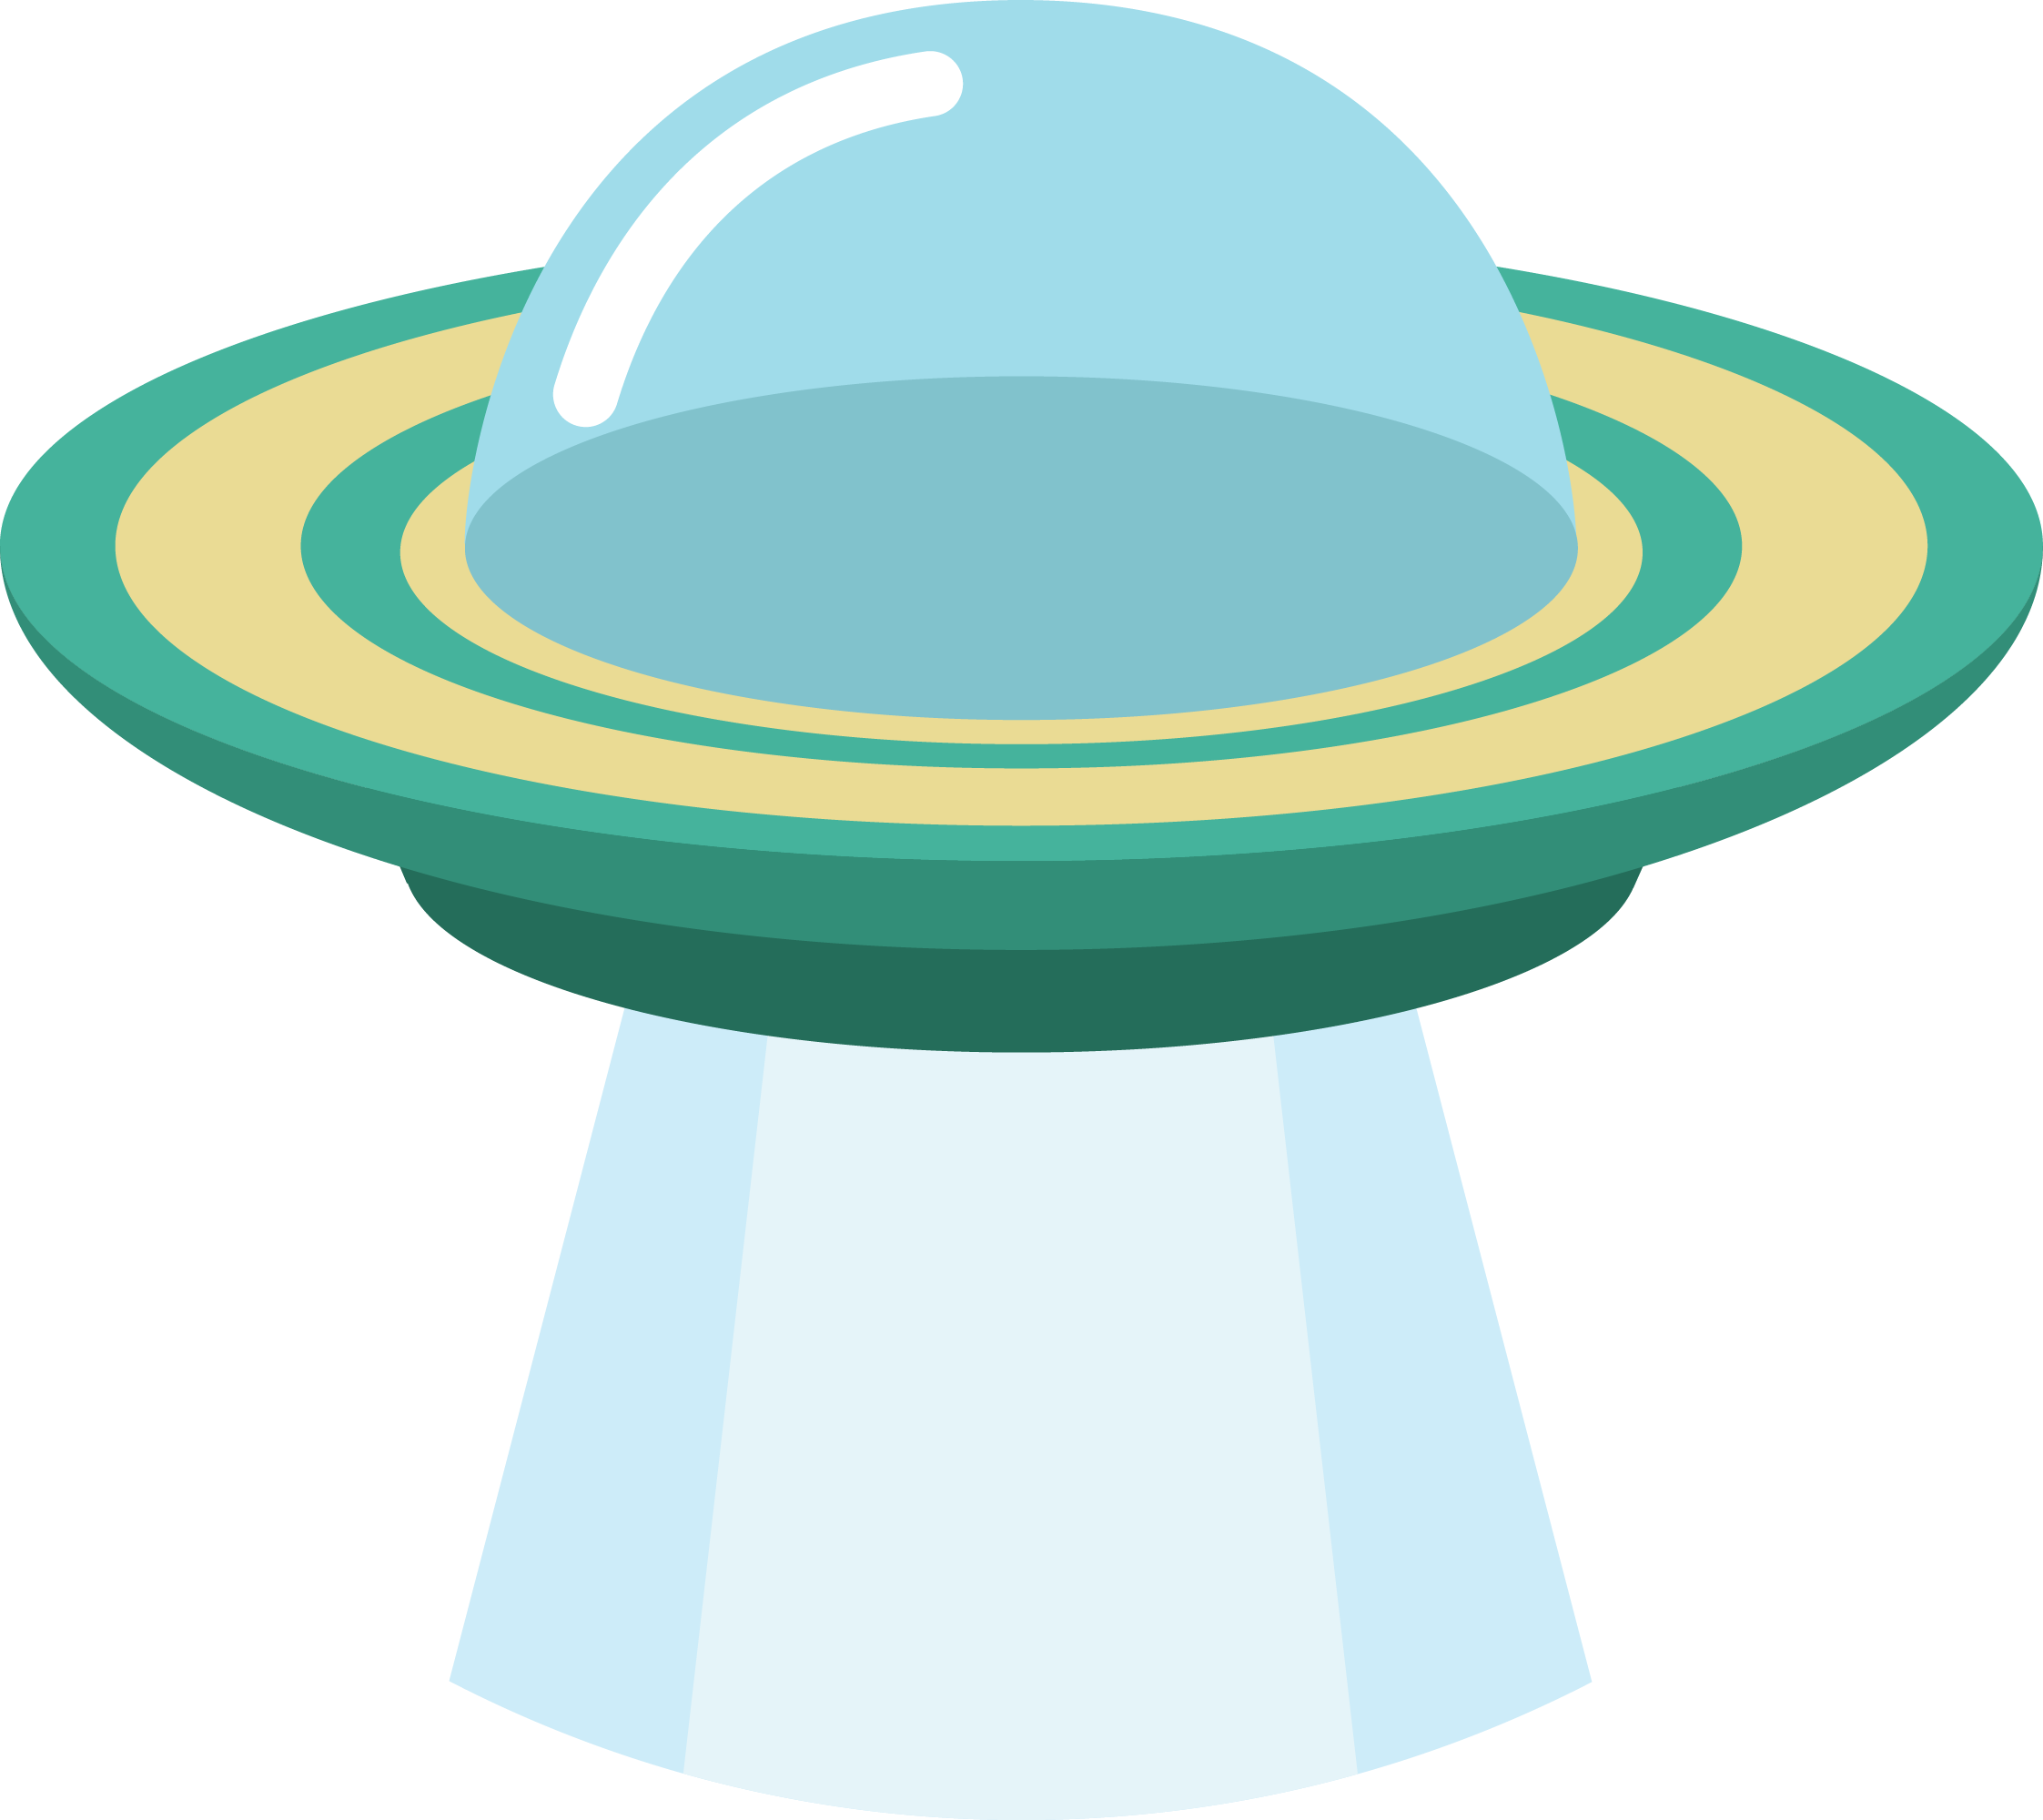 Png image purepng free. Ufo clipart high resolution